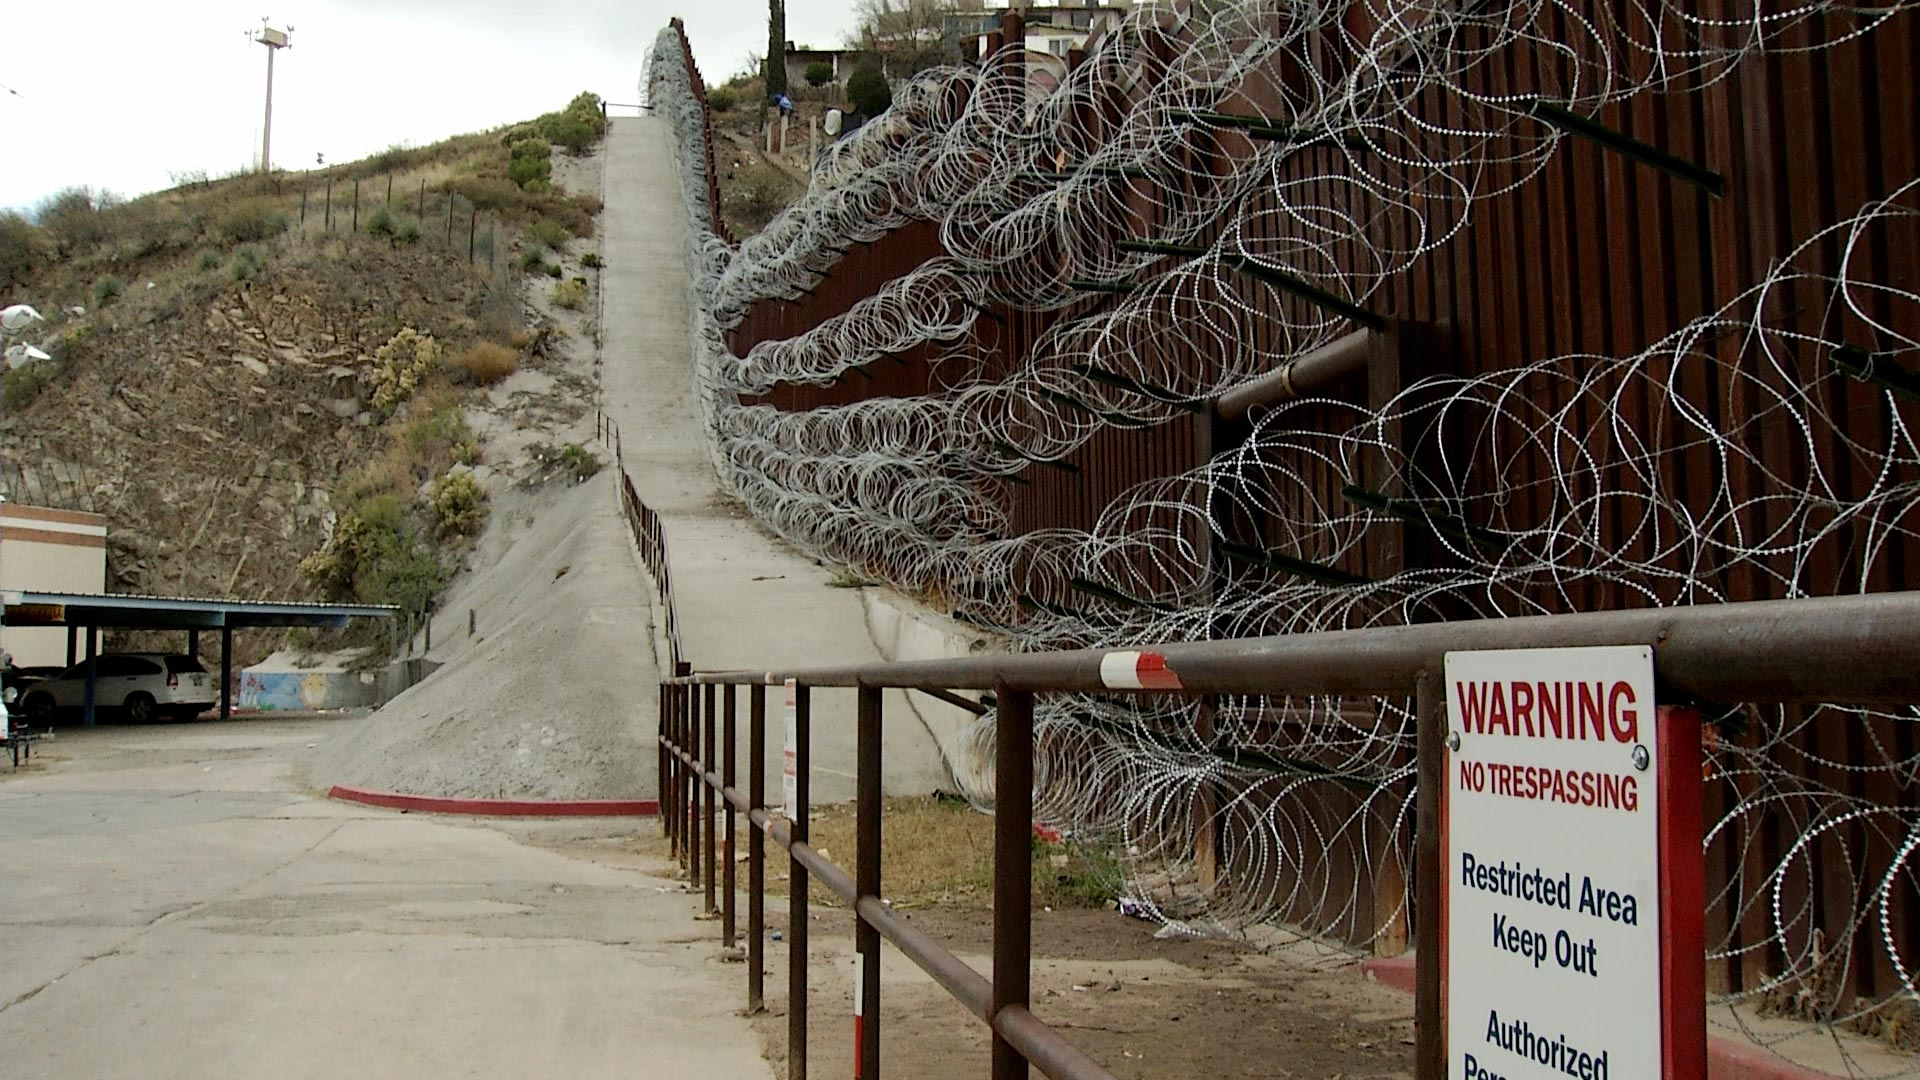 A sign warns against trespassing on federal property in front of bollard fencing covered in concertina wire at the international border in Nogales, Arizona.